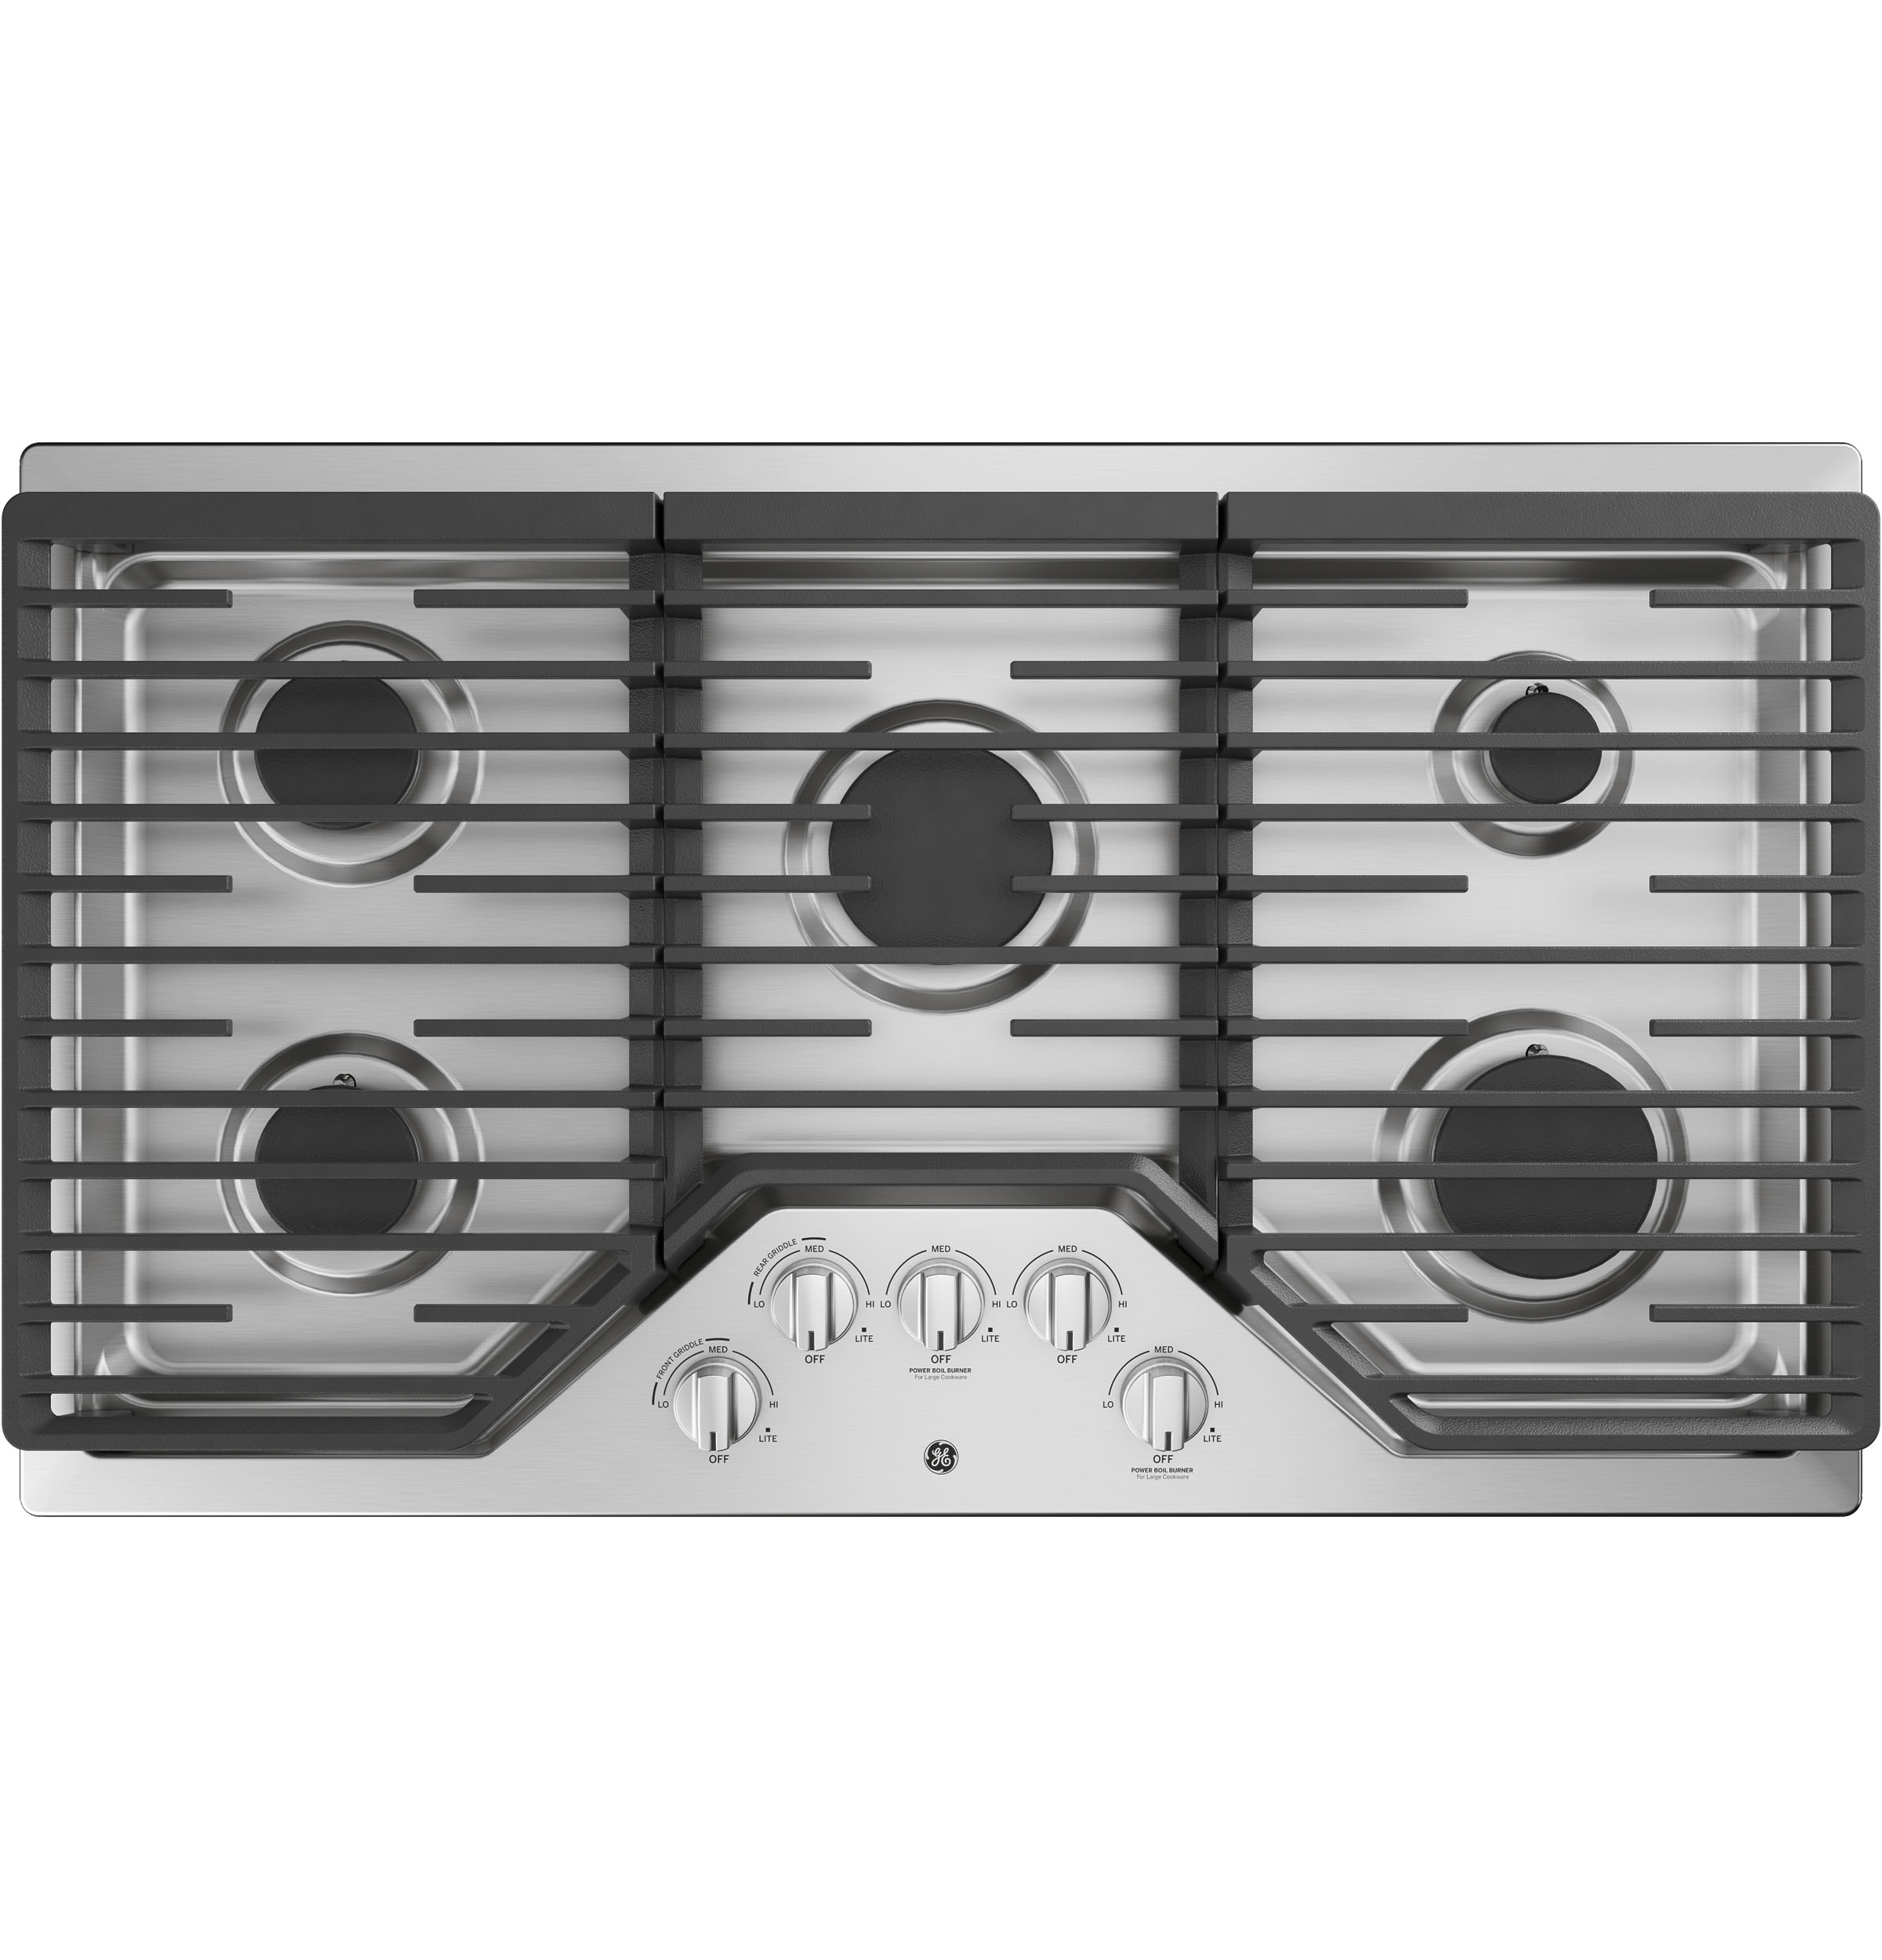 Ge 36 Built In Gas Cooktop Jgp5036slss Appliances Wiring Electric Oven And Hob Product Image